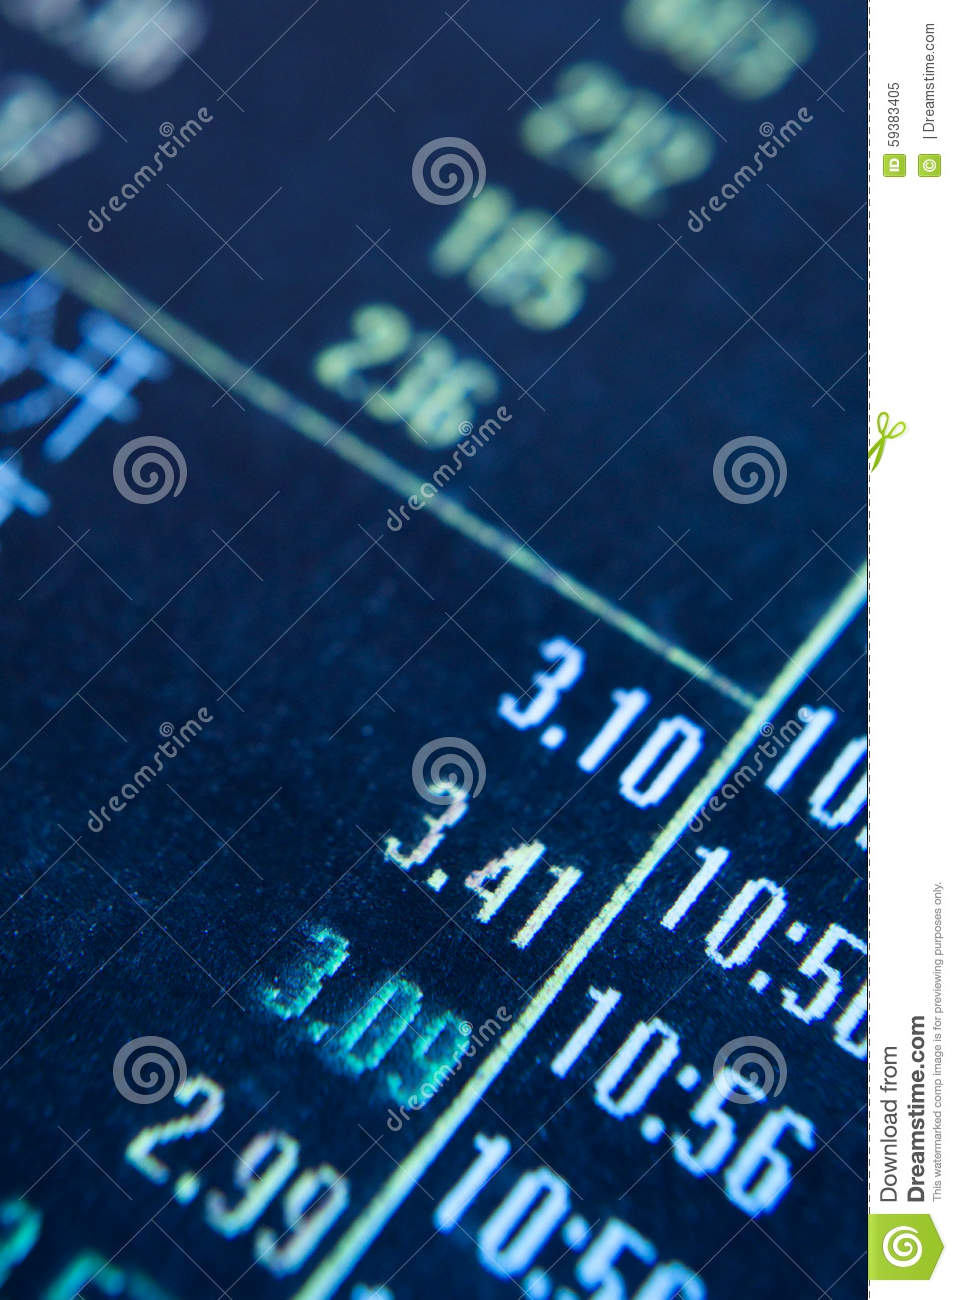 Free Stock Quote Stock Quotes Stock Imageimage Of Business Banking  59383405